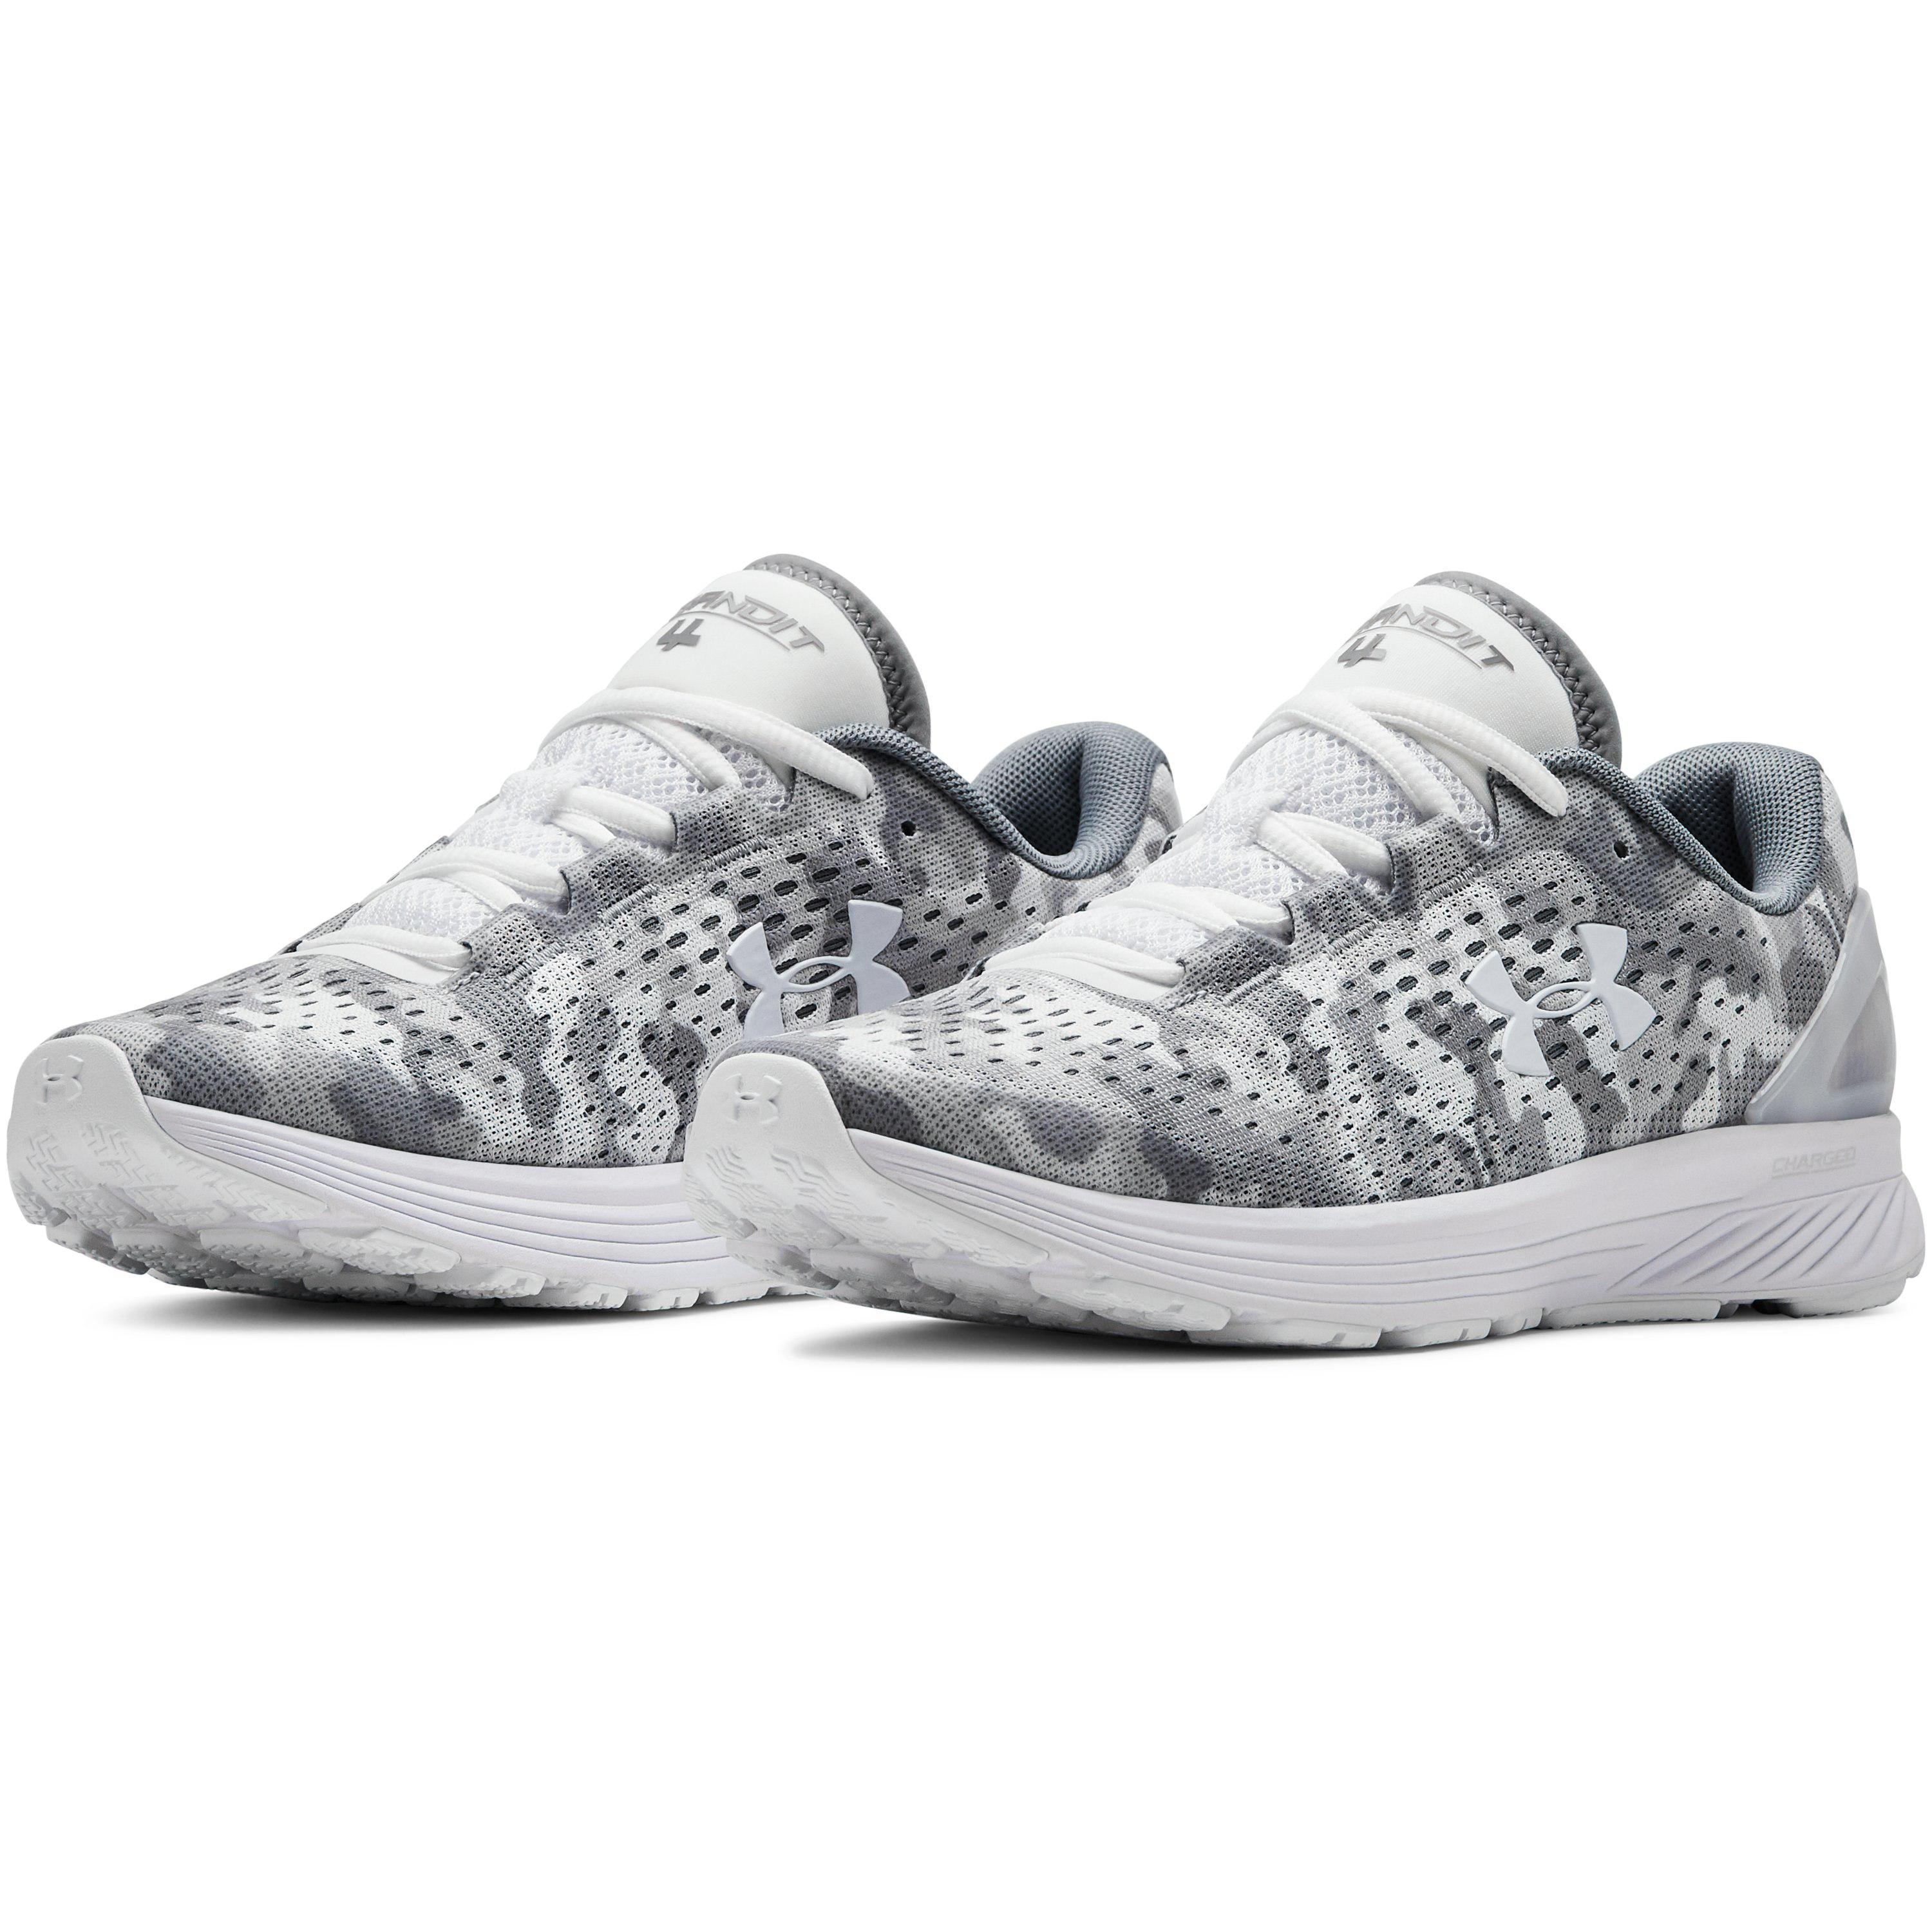 quality design 6cc9c eb4a2 White Women's Ua Charged Bandit 4 Graphic Running Shoes